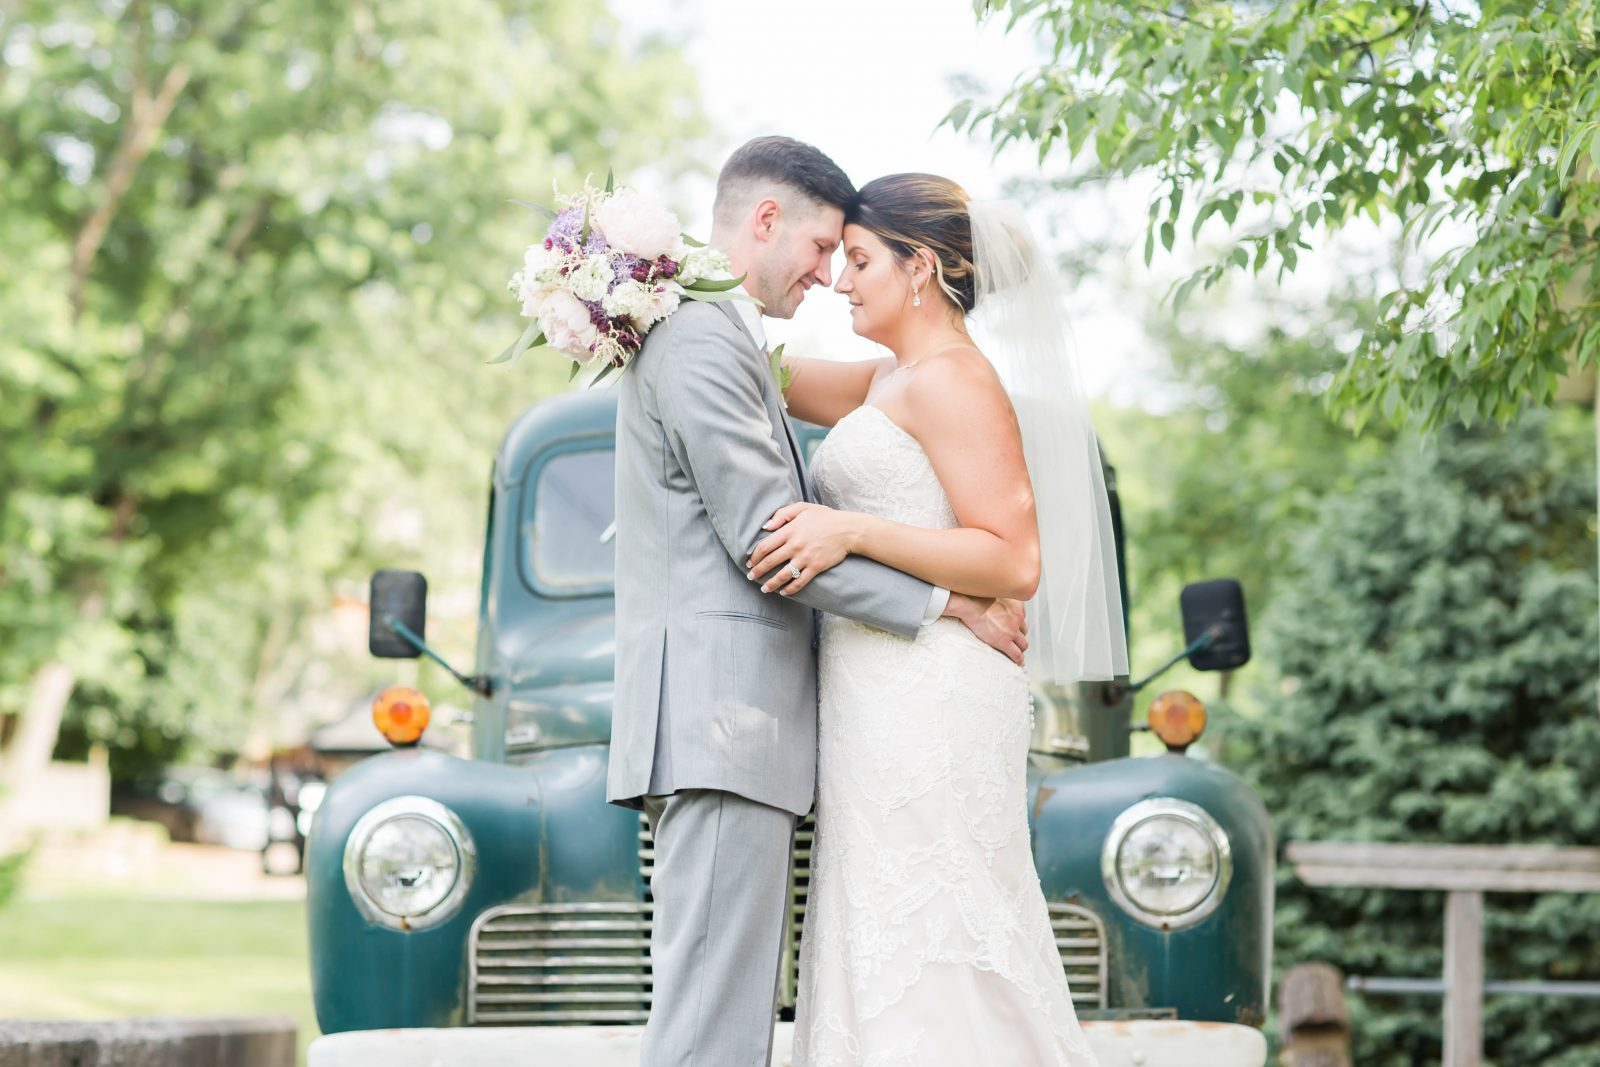 rivercrest-farm-summer-wedding-loren-jackson-photography-90